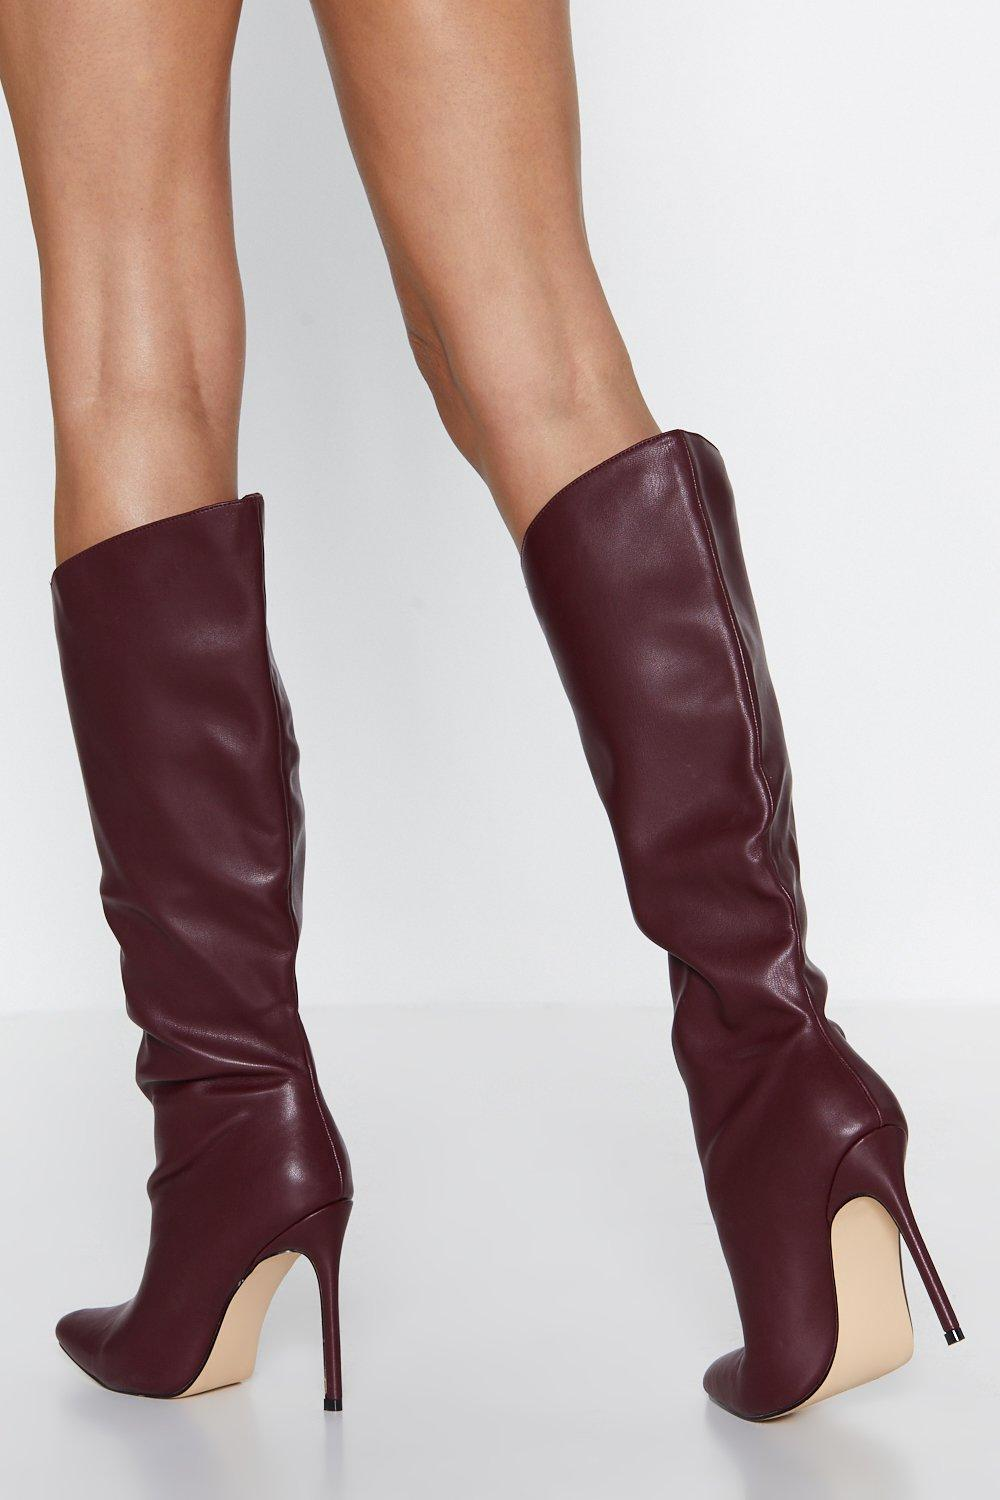 100% genuine modern and elegant in fashion 2019 hot sale Wicked Heart Knee-High Boot   Shop Clothes at Nasty Gal!